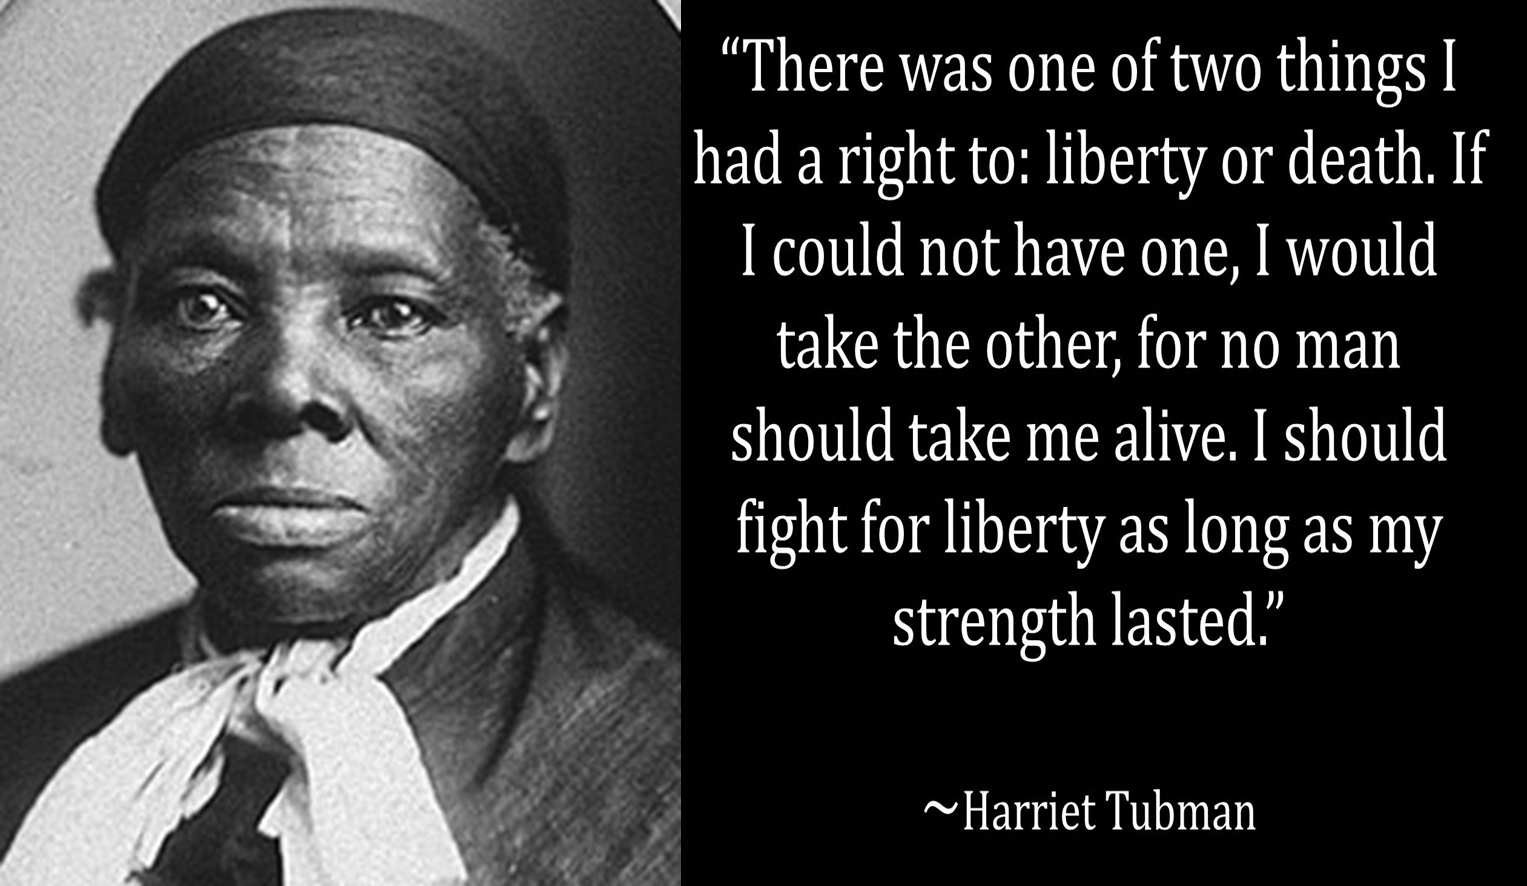 harriet tubman s greatest achievement on emaze